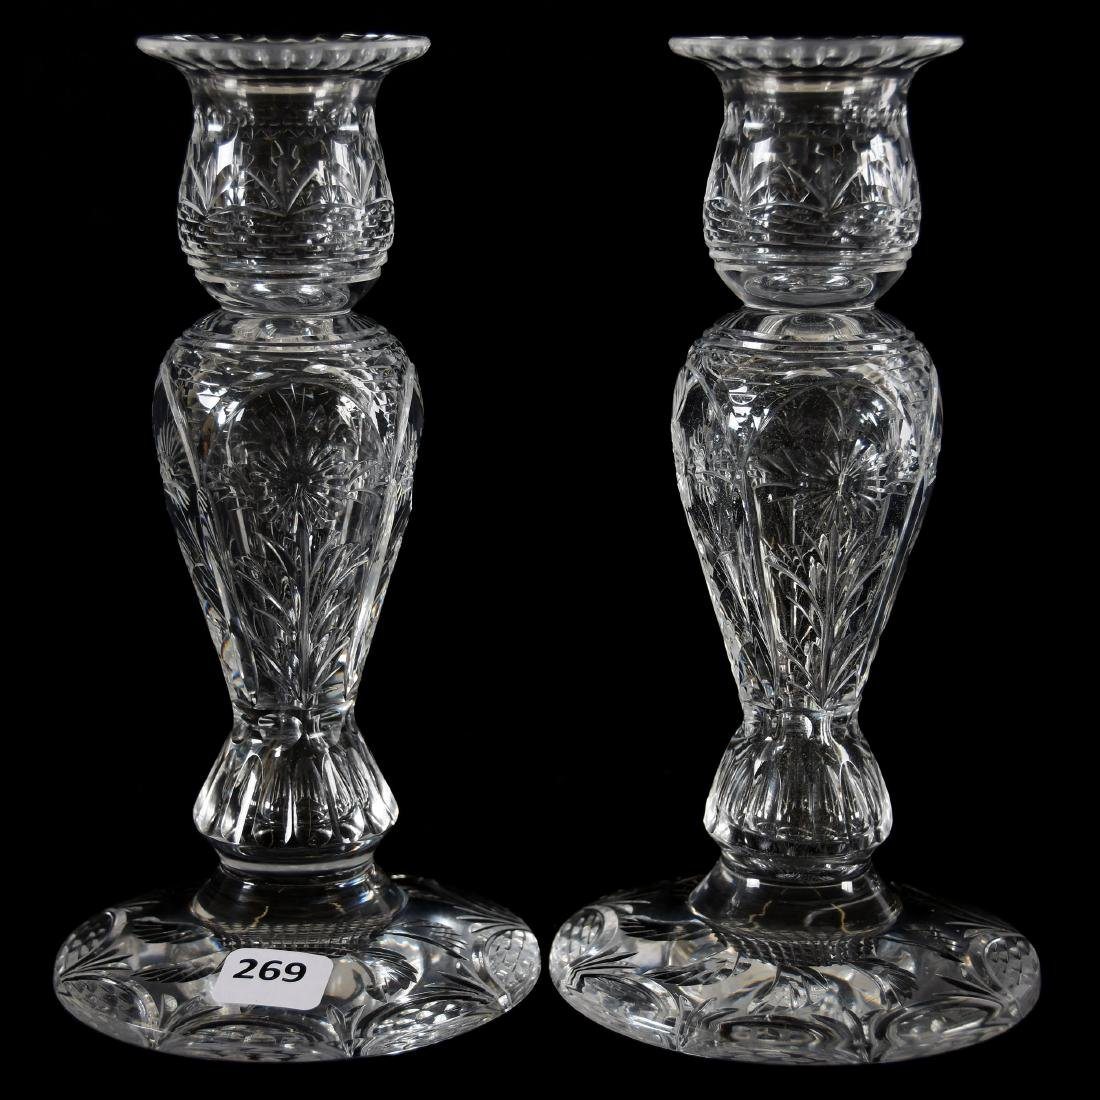 Pair Candlesticks, Engraved Floral Motif